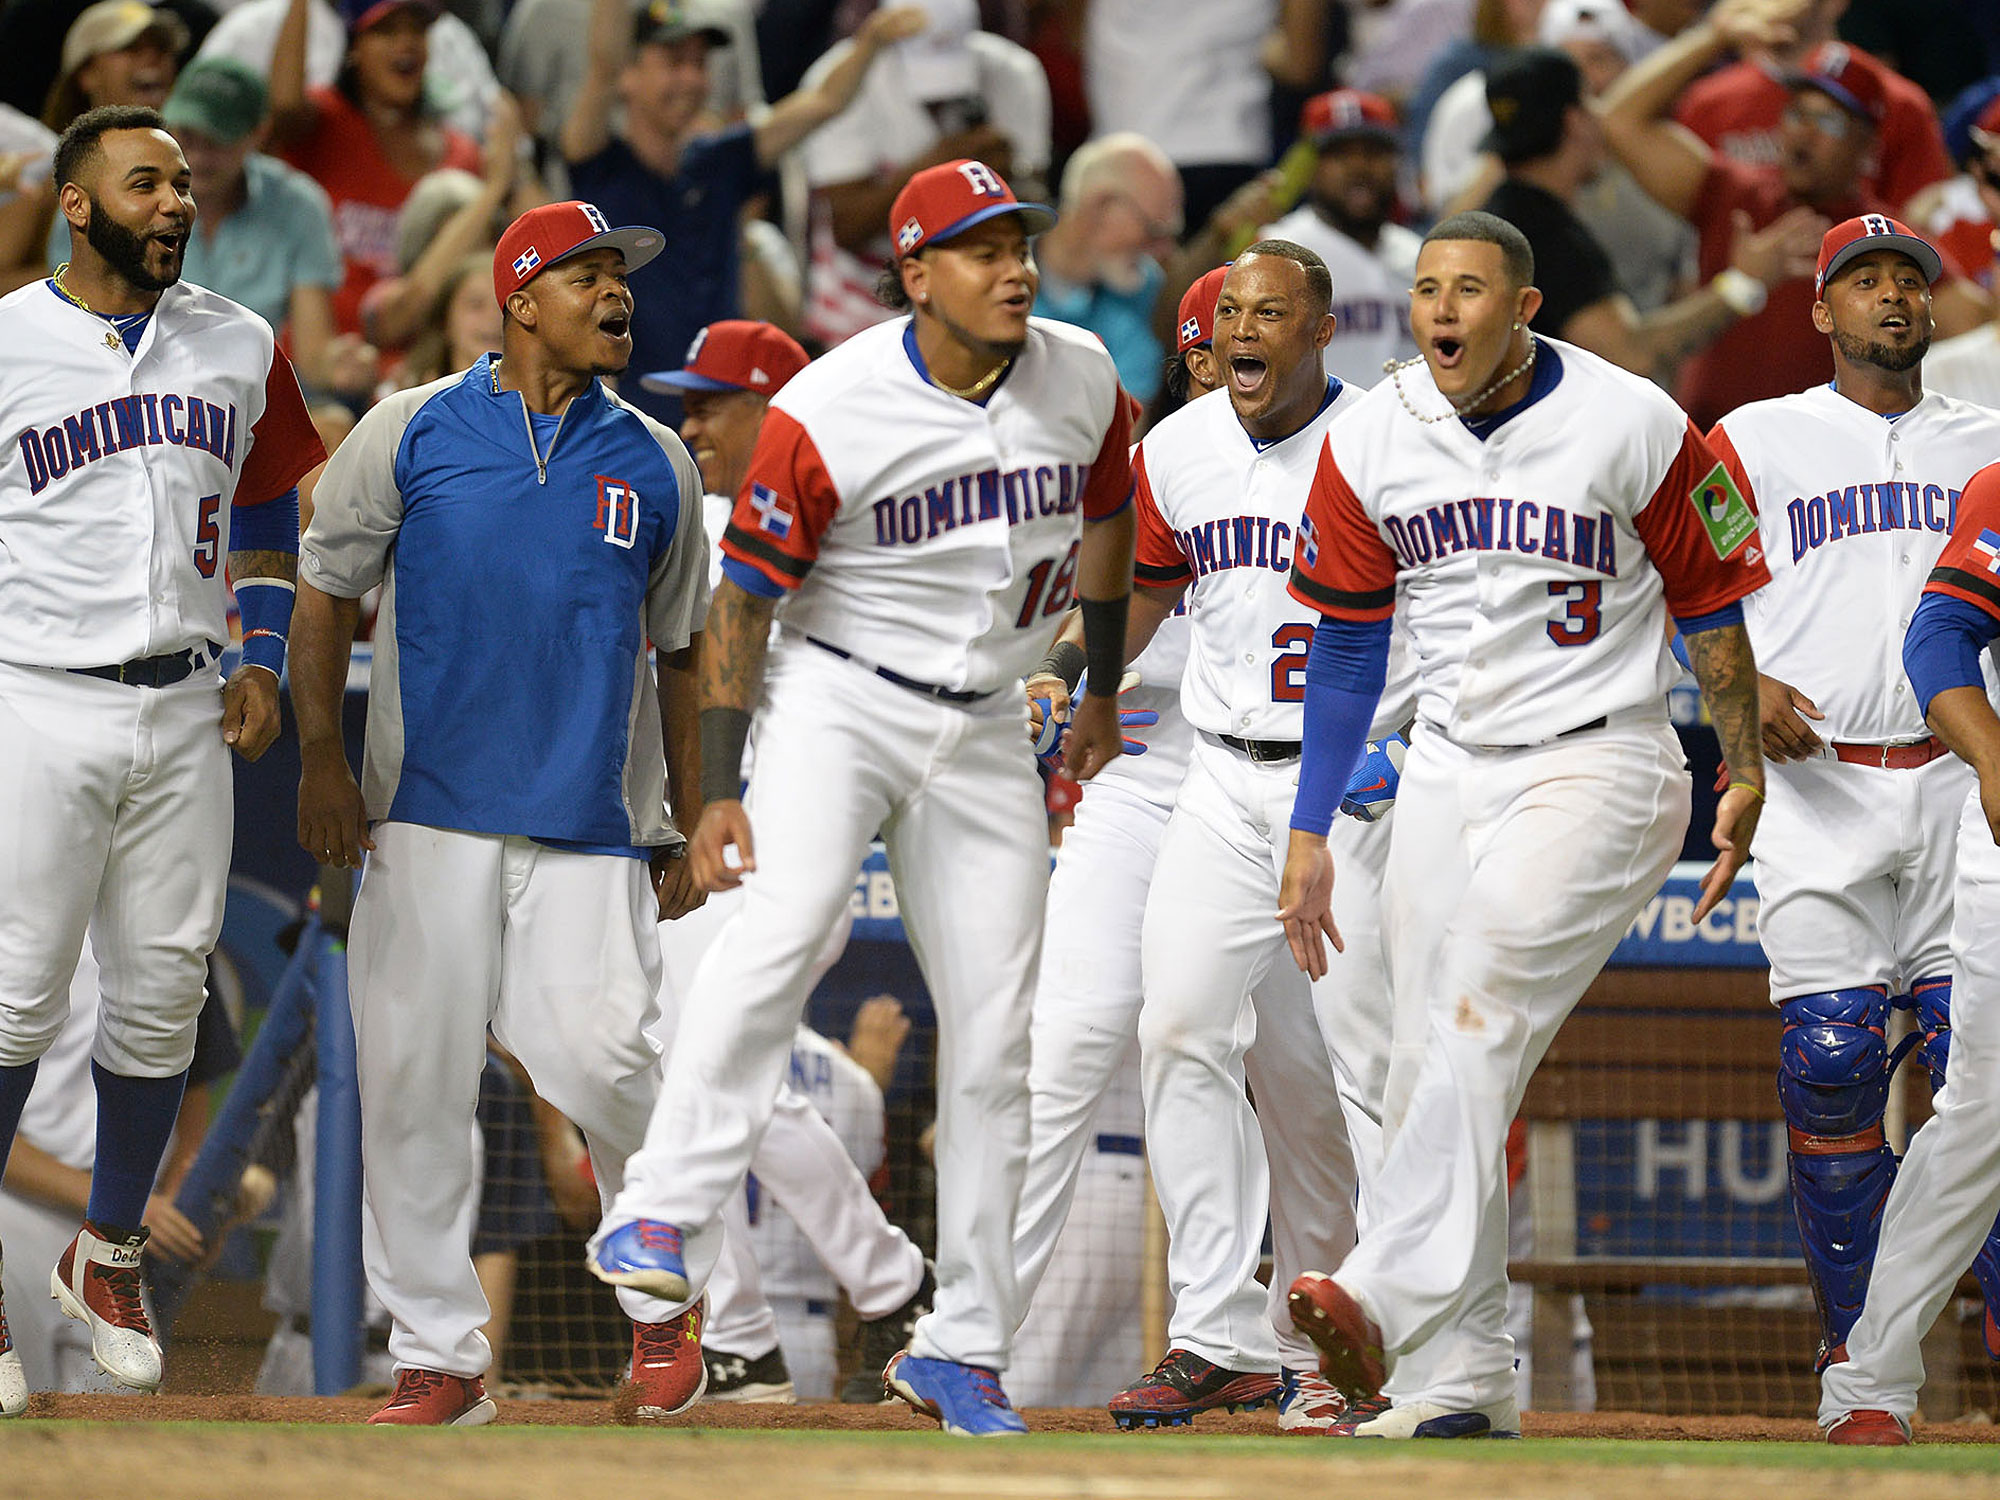 Dominican Republic, World Baseball Classic